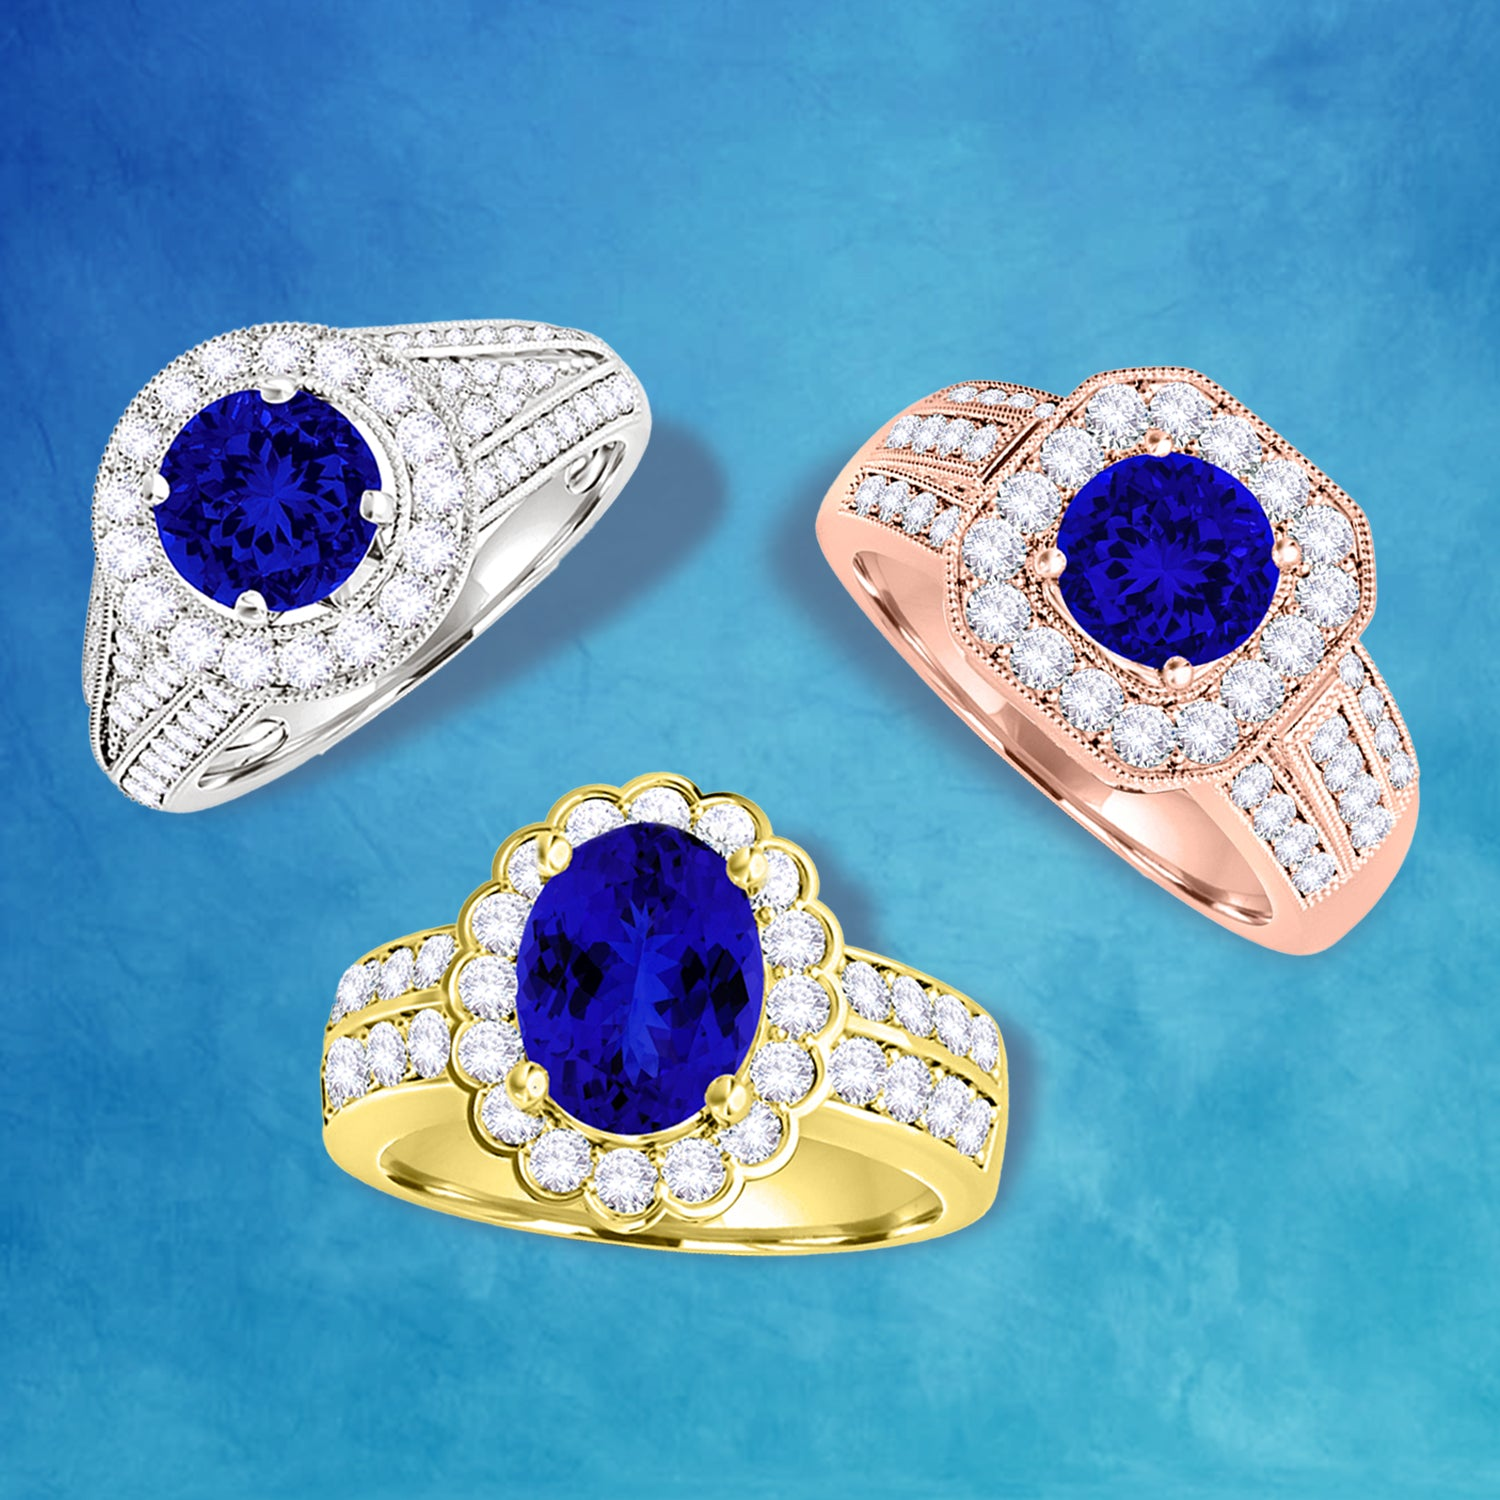 Can't decide between our collection of gorgeous rings? Try a custom tanzanite ring